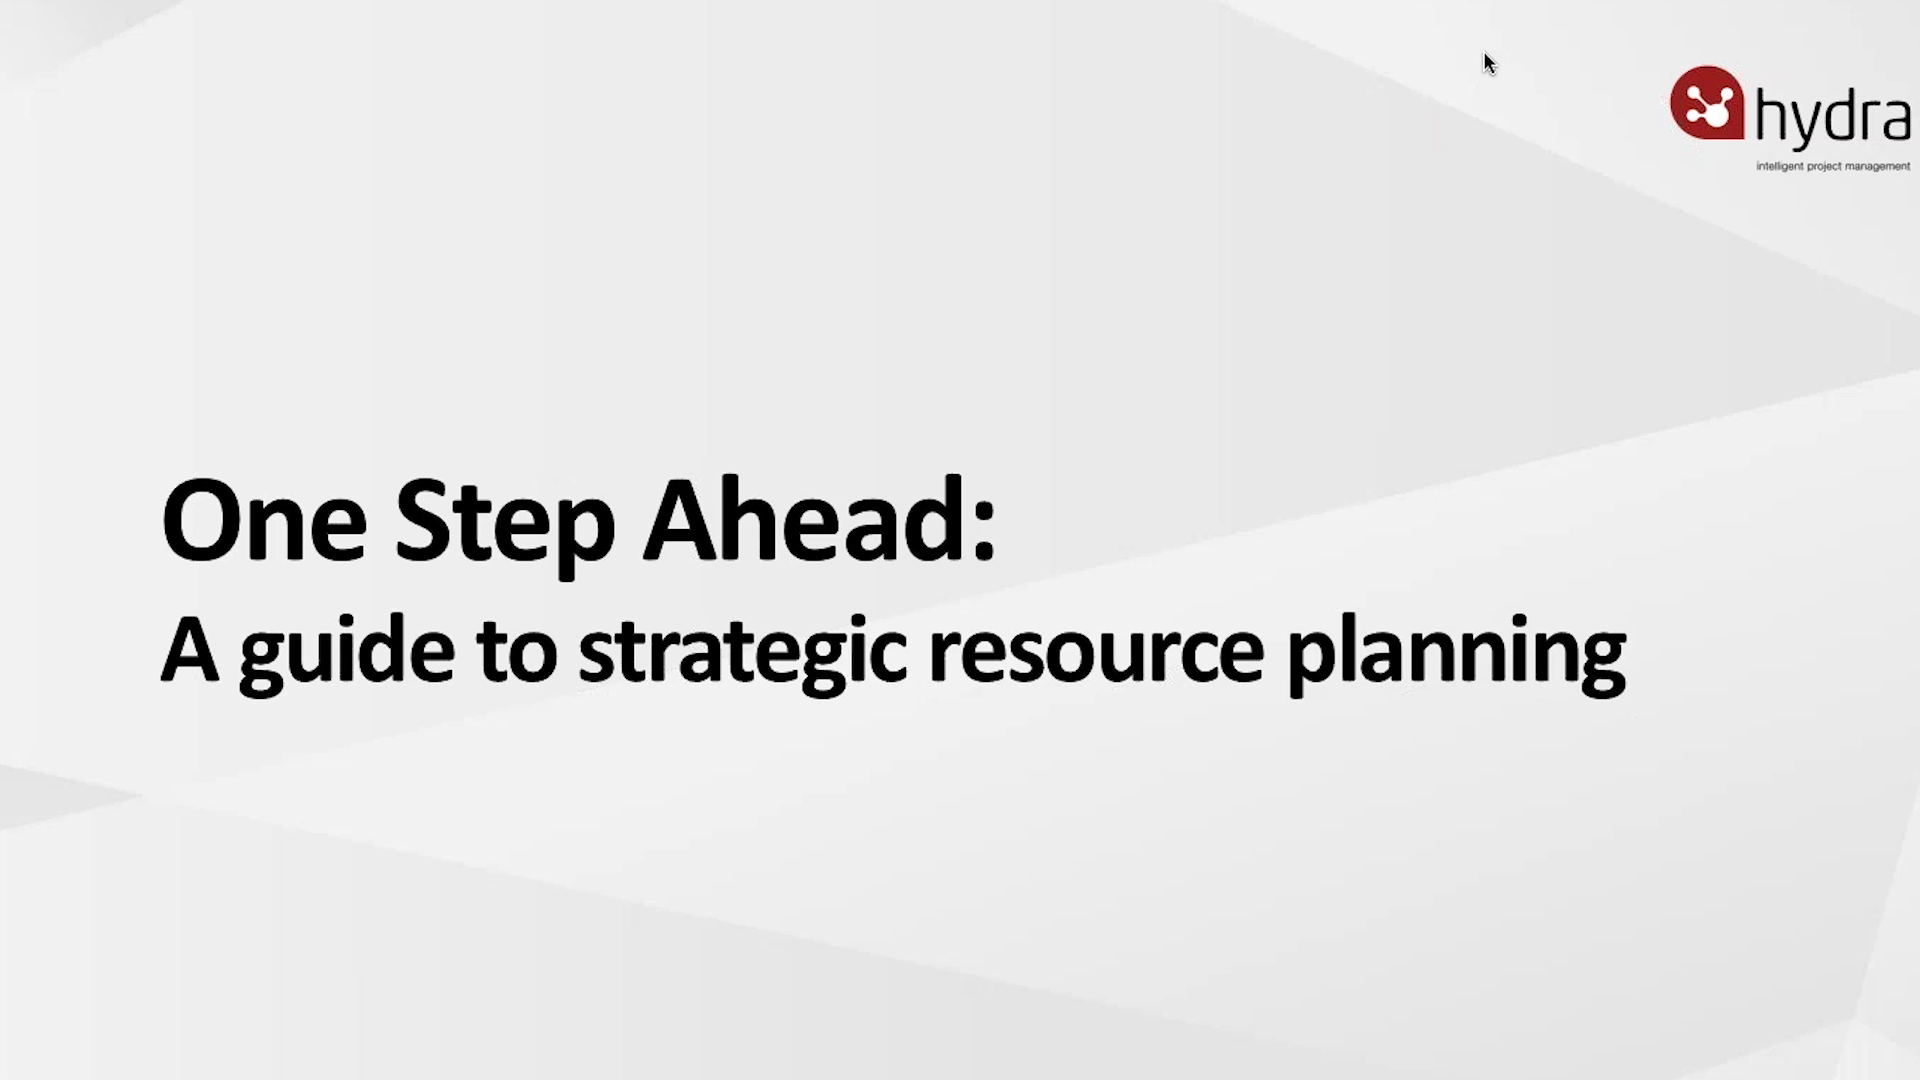 A Guide to Strategic Resource Planning